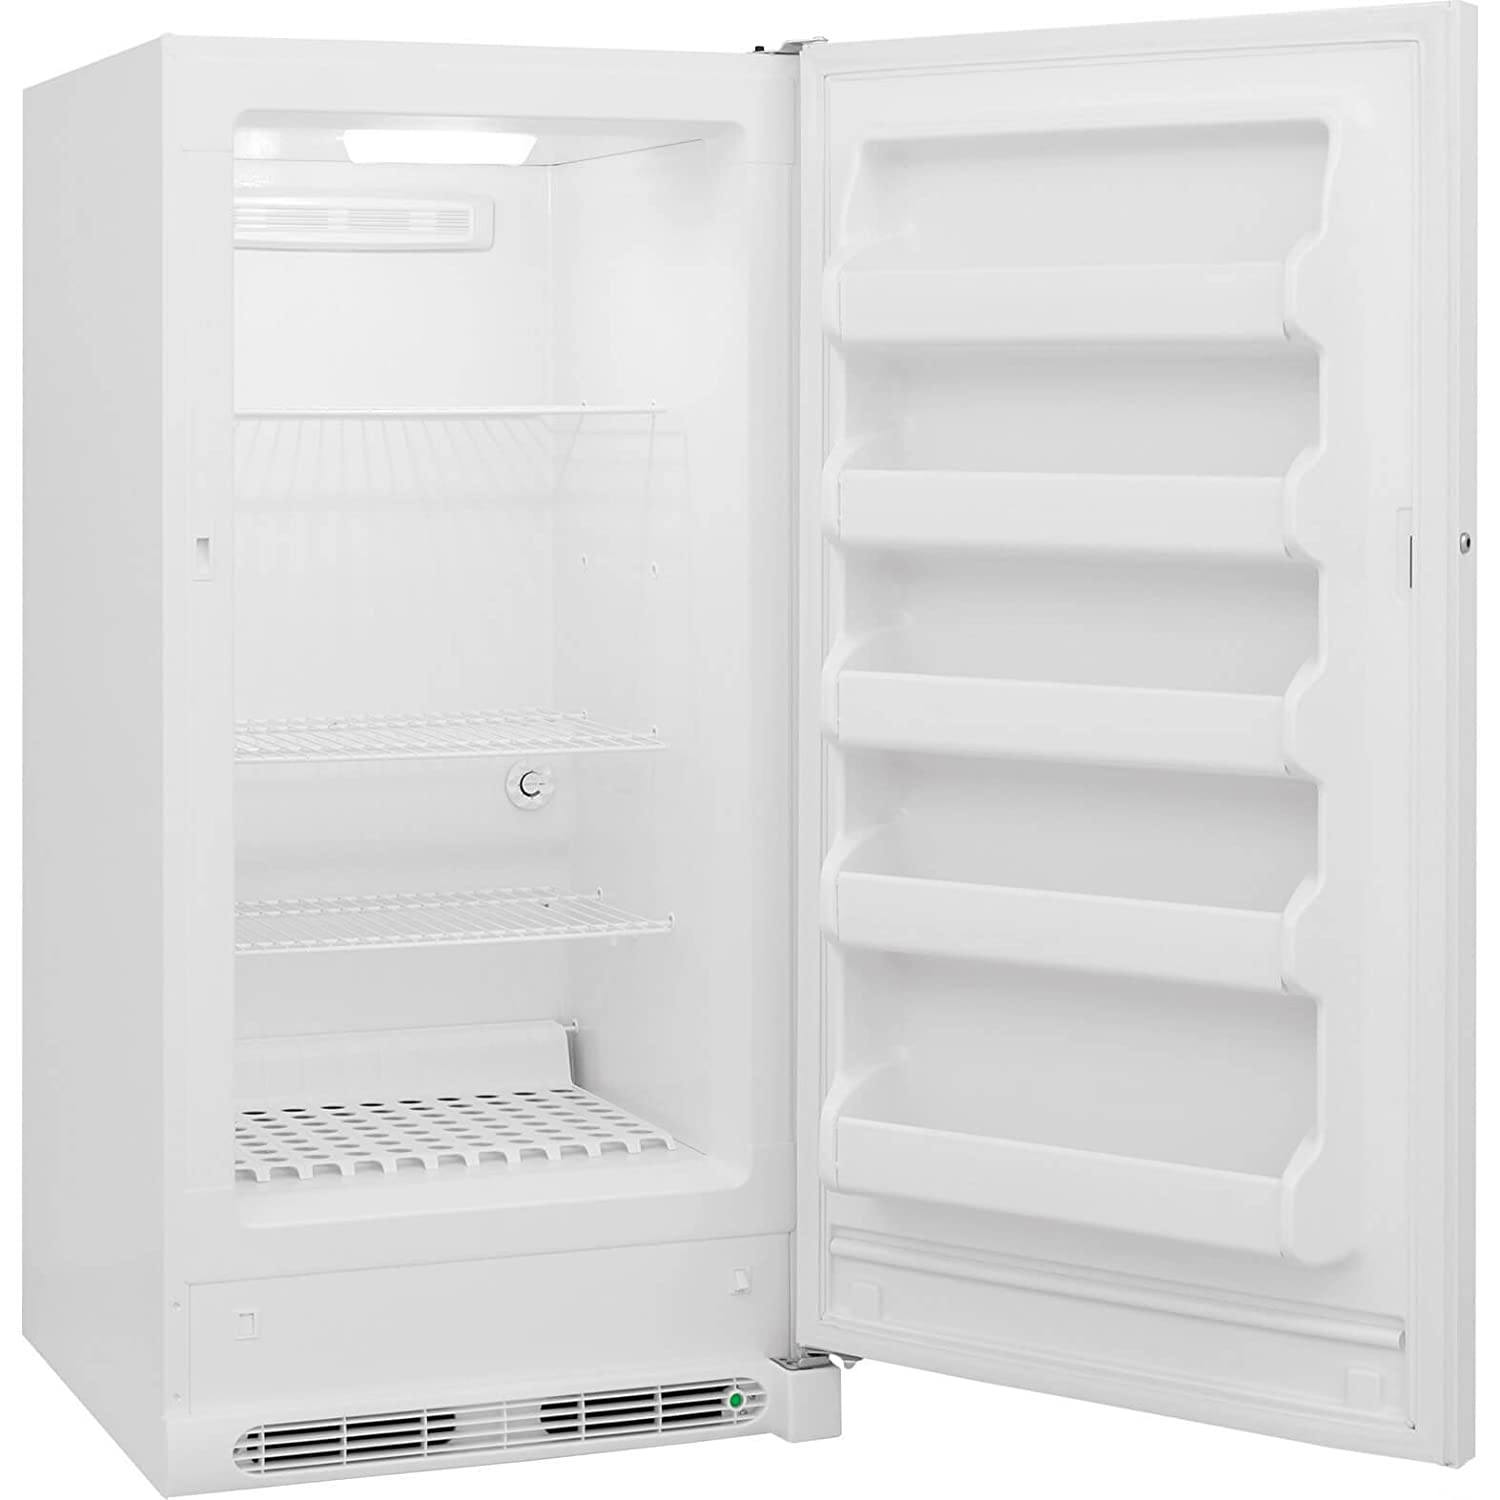 Frigidaire FFFU14F2QW 13.8 Cu. Ft. Upright Freezer